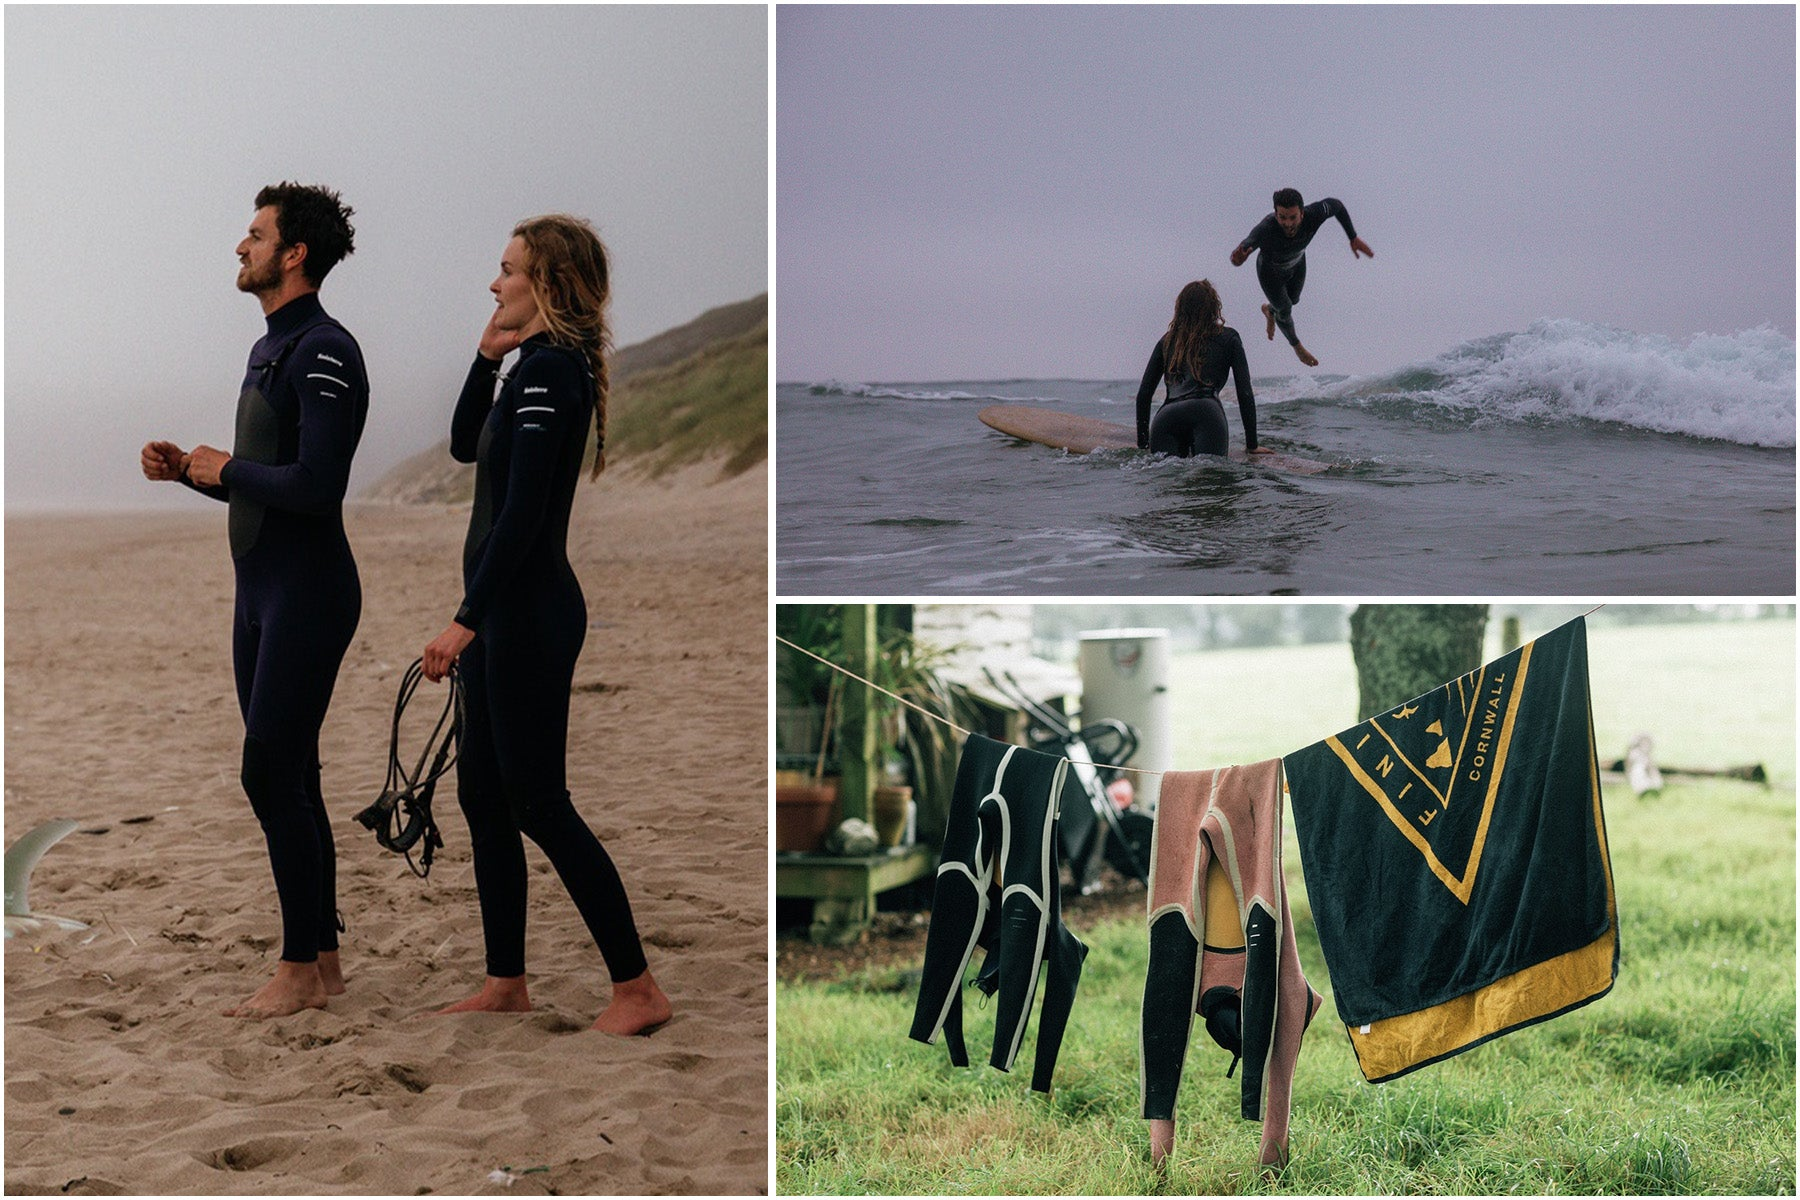 A couple wearing Finisterre wetsuits surfing and laughing together